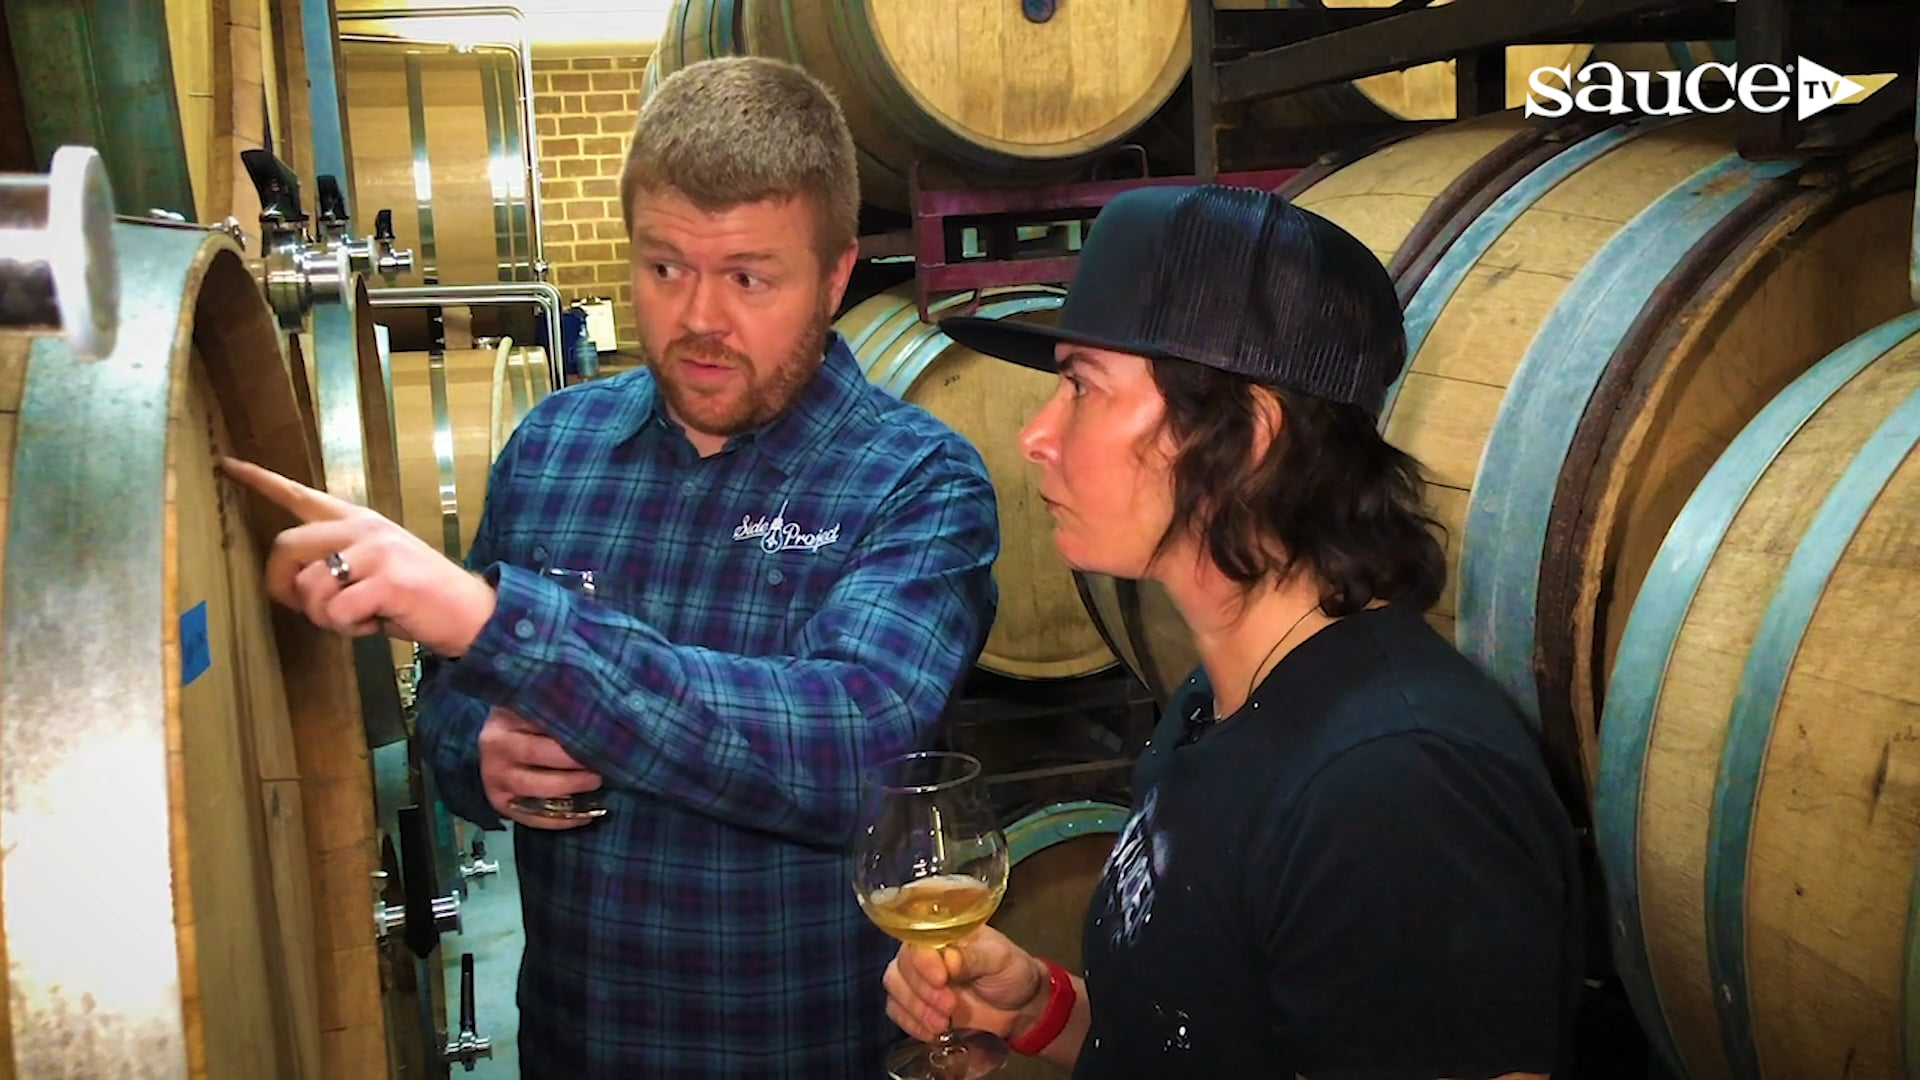 Side Project Brewing's Cory King pulls nails with SauceTV